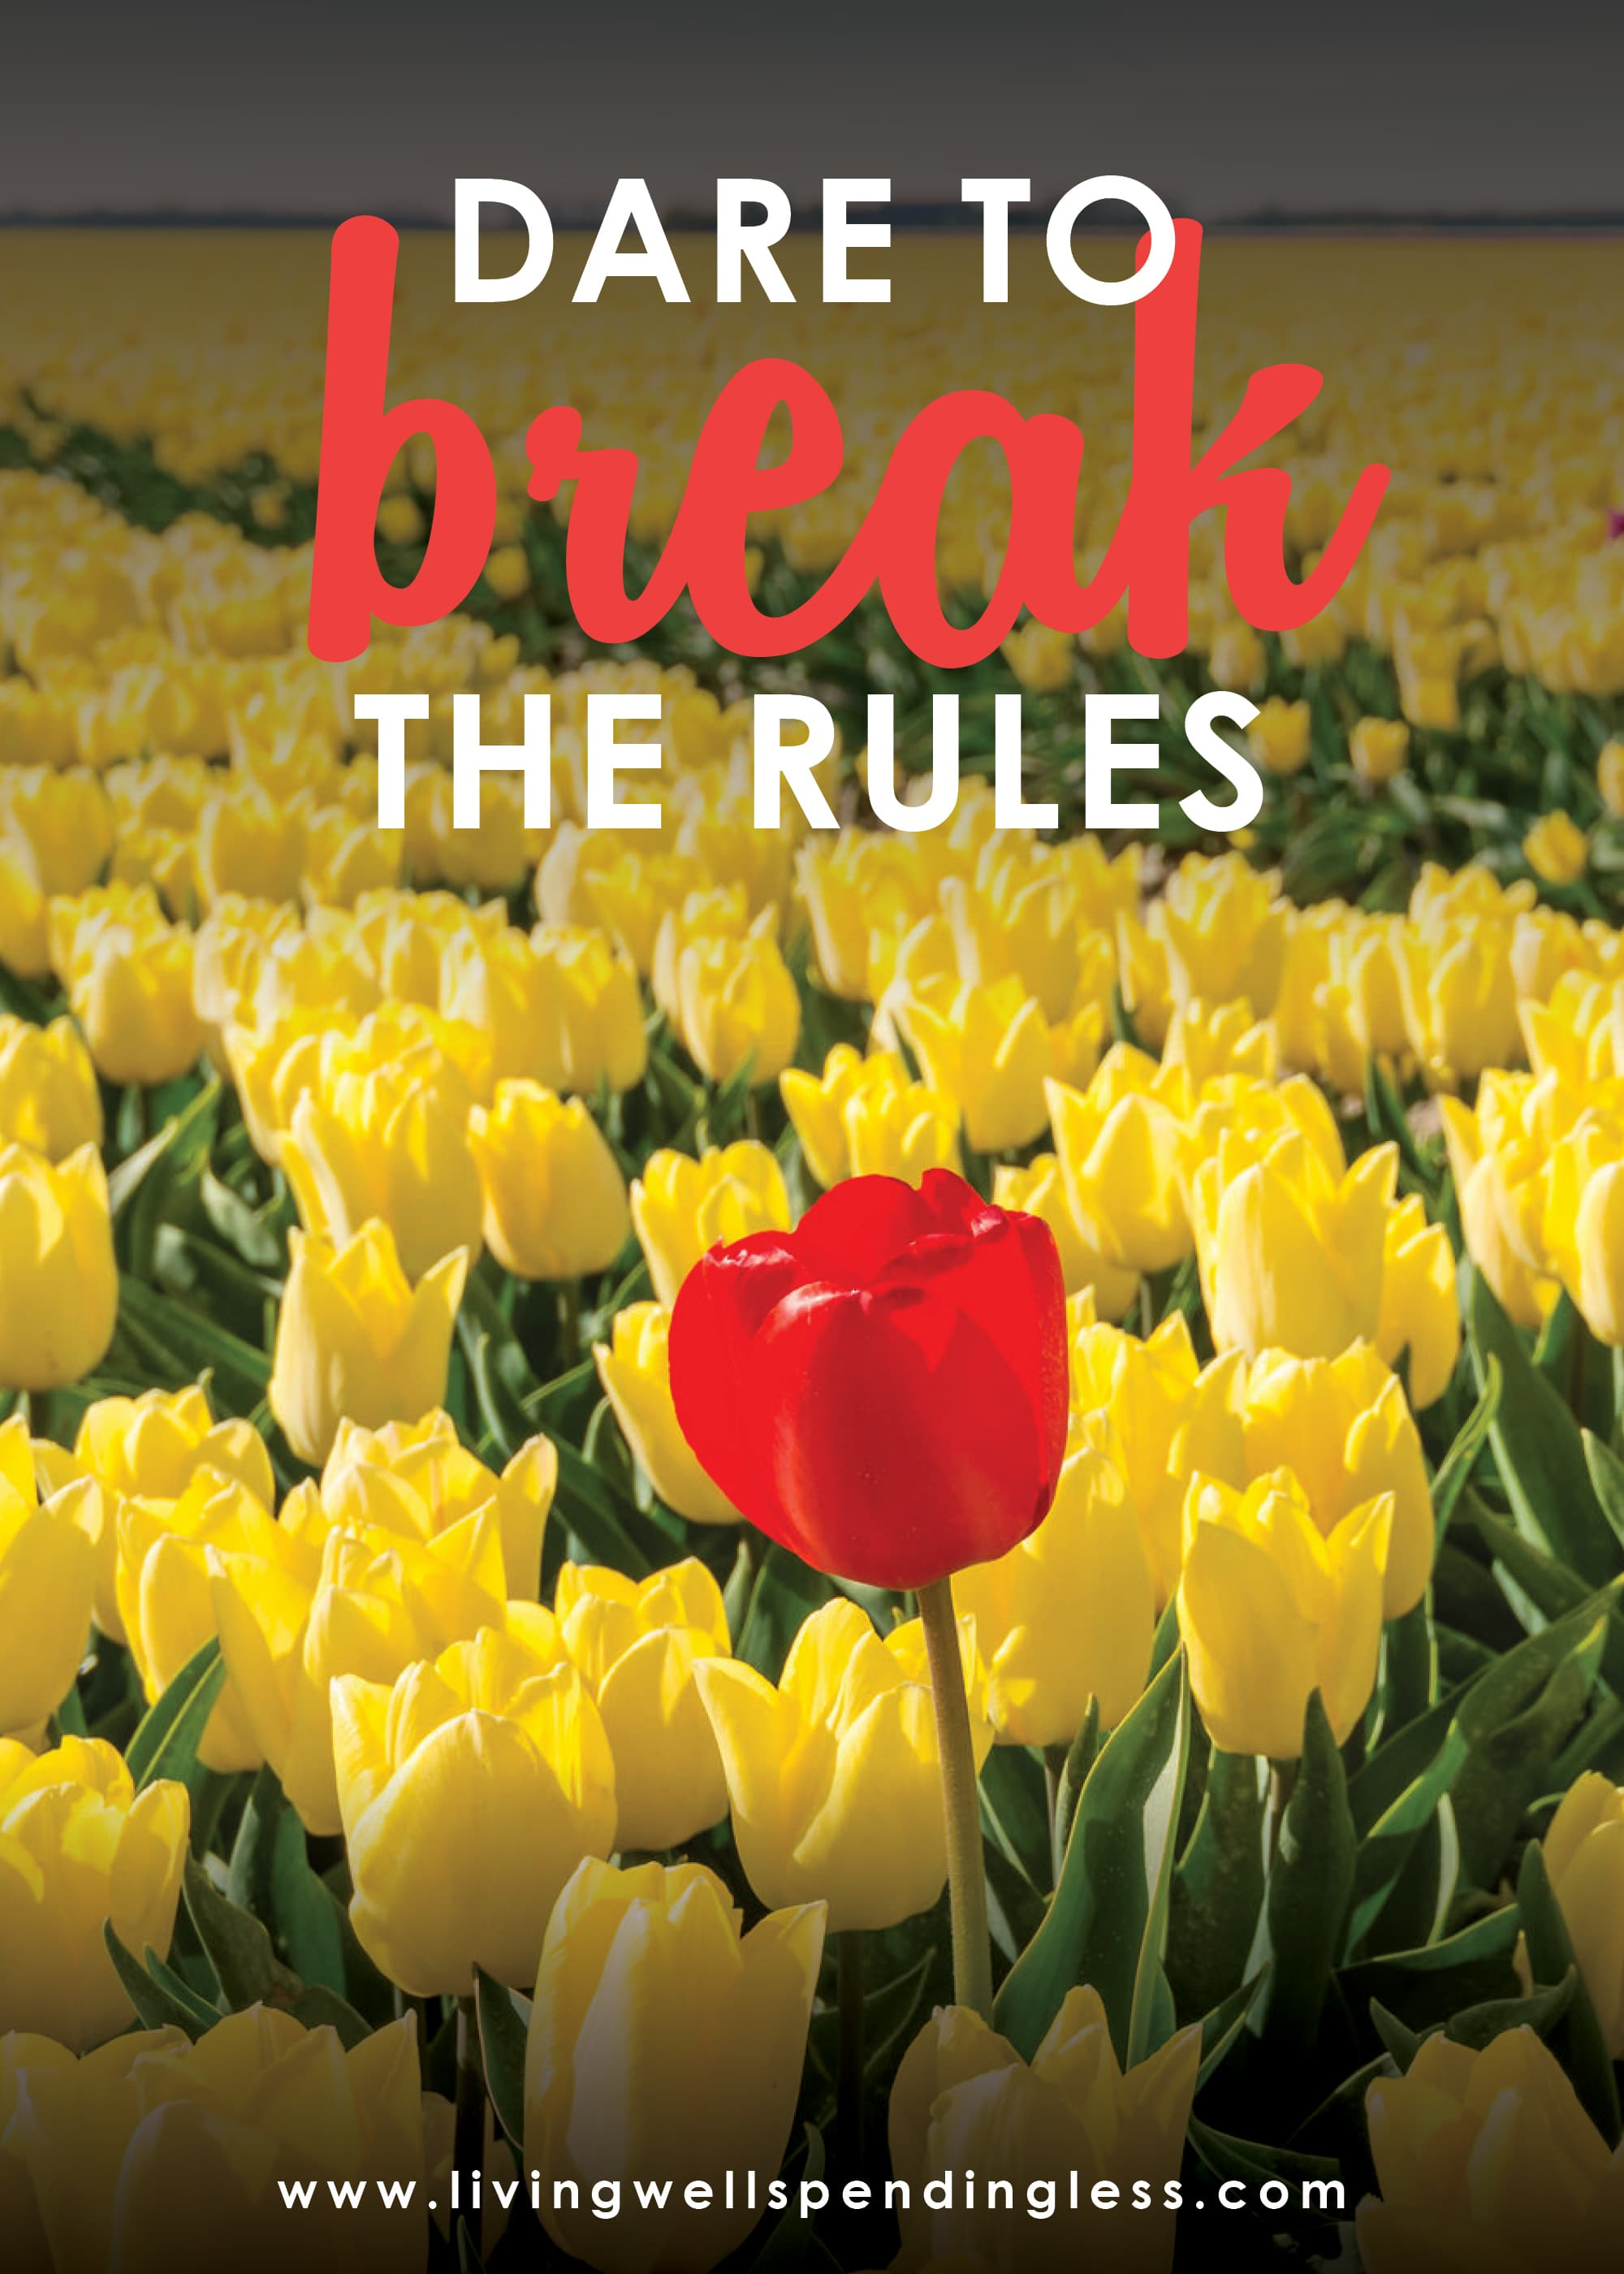 This week's podcast episode is all about daring to break the rules.